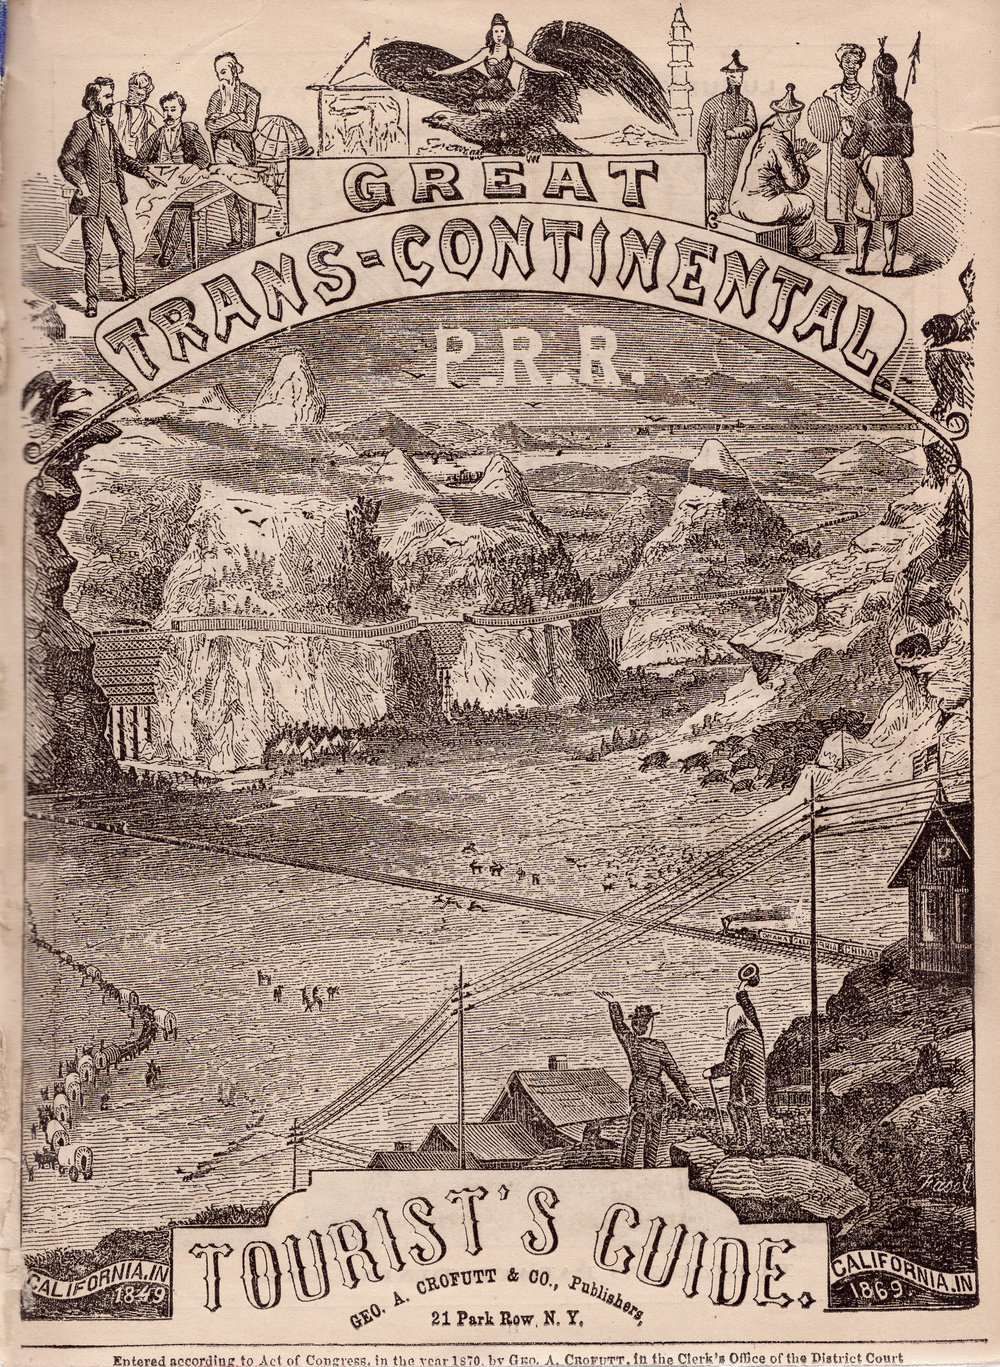 Crofutt's_Trans-Continental_Tourist's_Guide_Frontispiece_1870.jpg